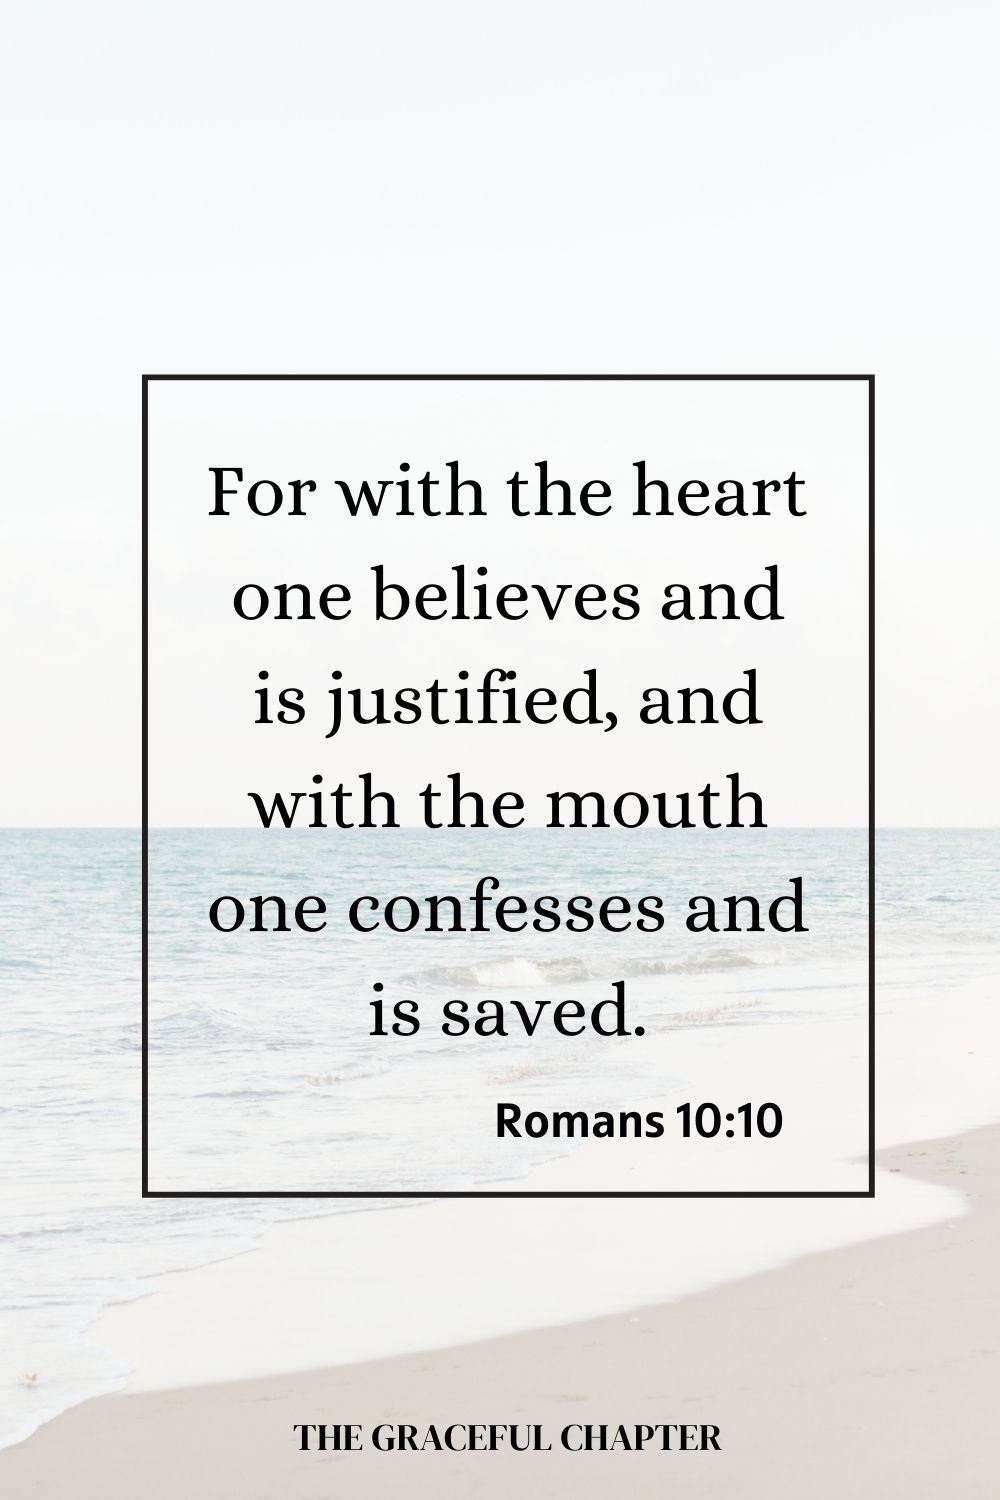 For with the heart, one believes and is justified, and with the mouth, one confesses and is saved. Romans 10:10